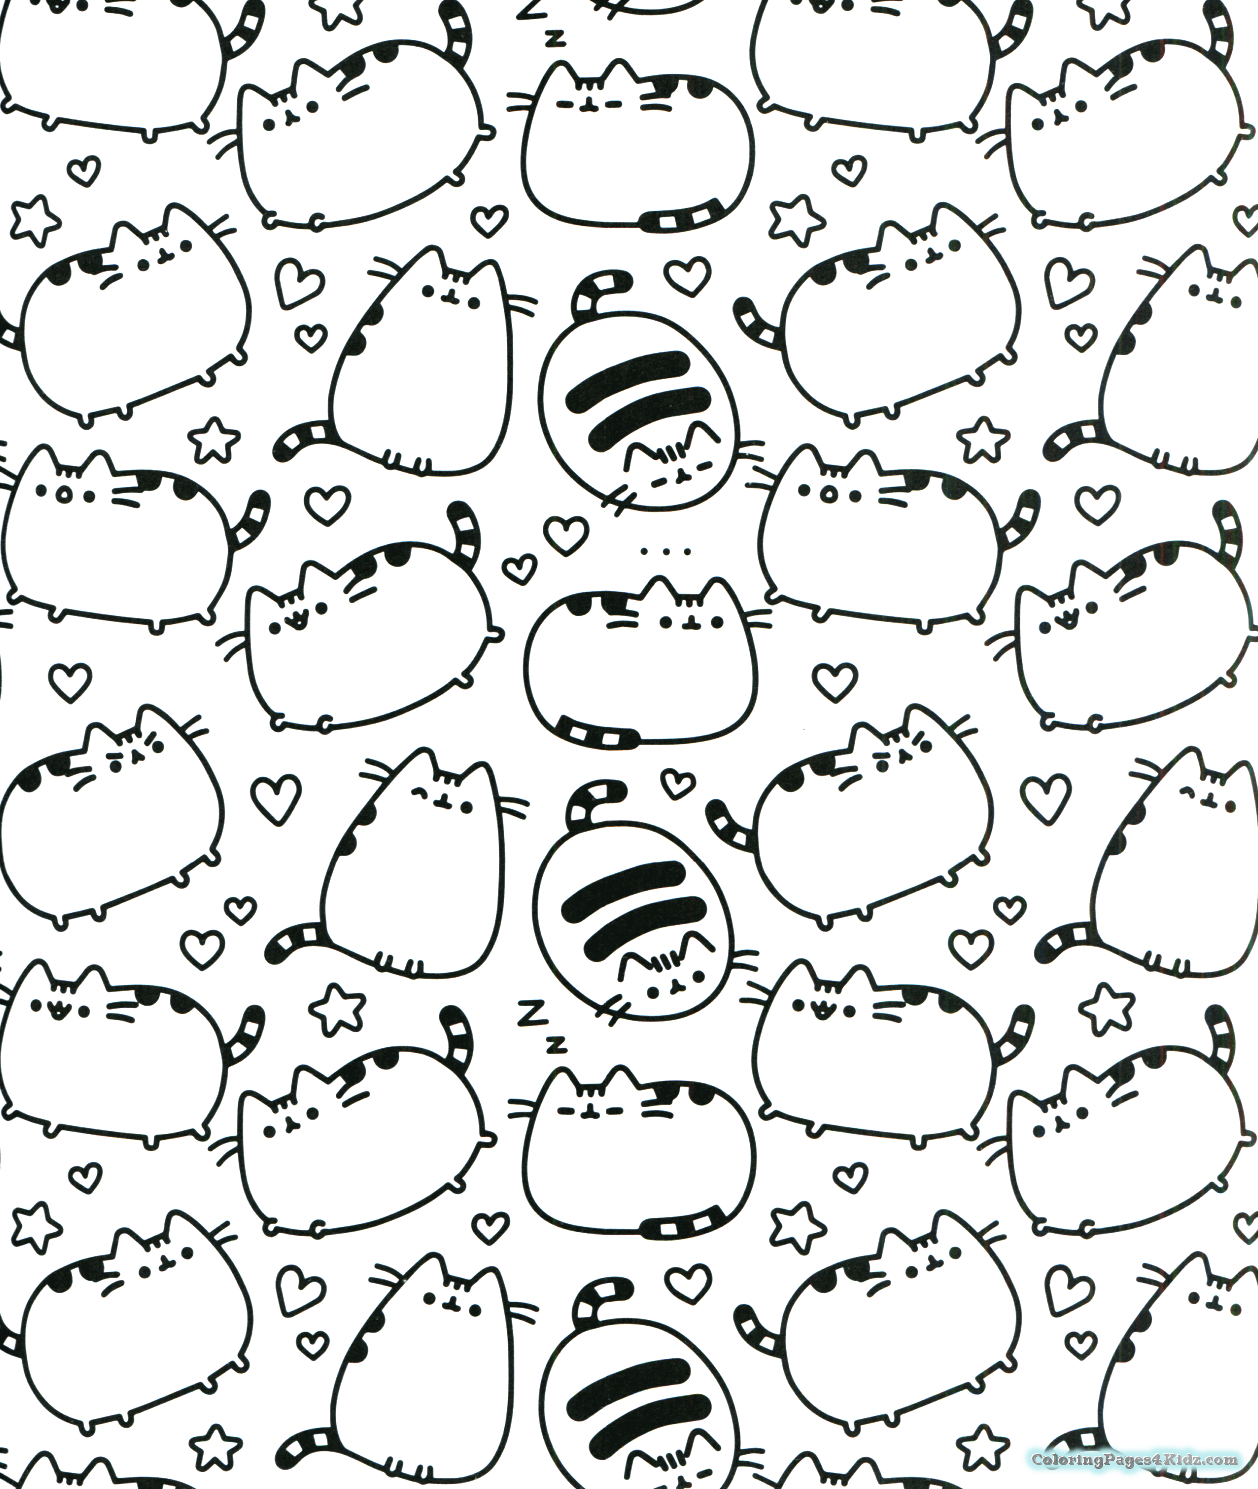 Pusheen Cat Coloring Pages Collection - Whitesbelfast | 1489x1258